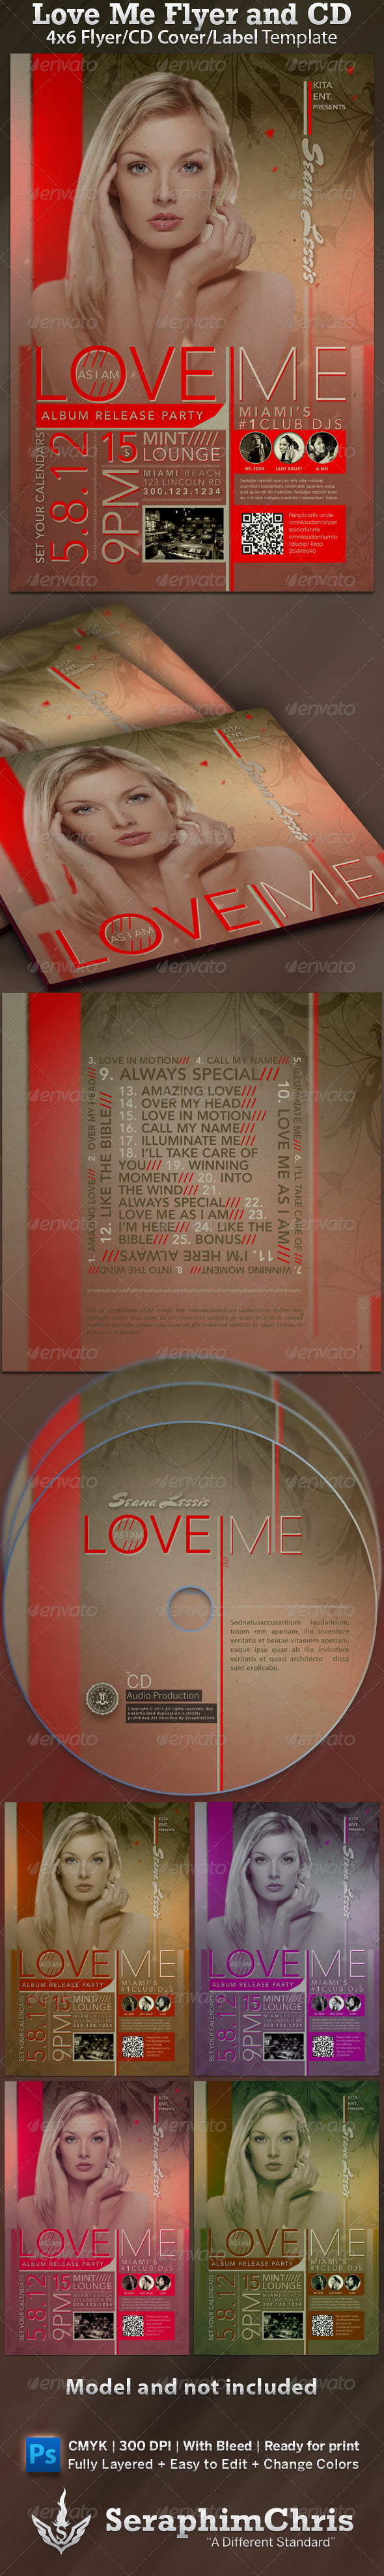 Graphic River Love Me CD Cover and Flyer Template Print Templates -  CD & DVD artwork 1545746